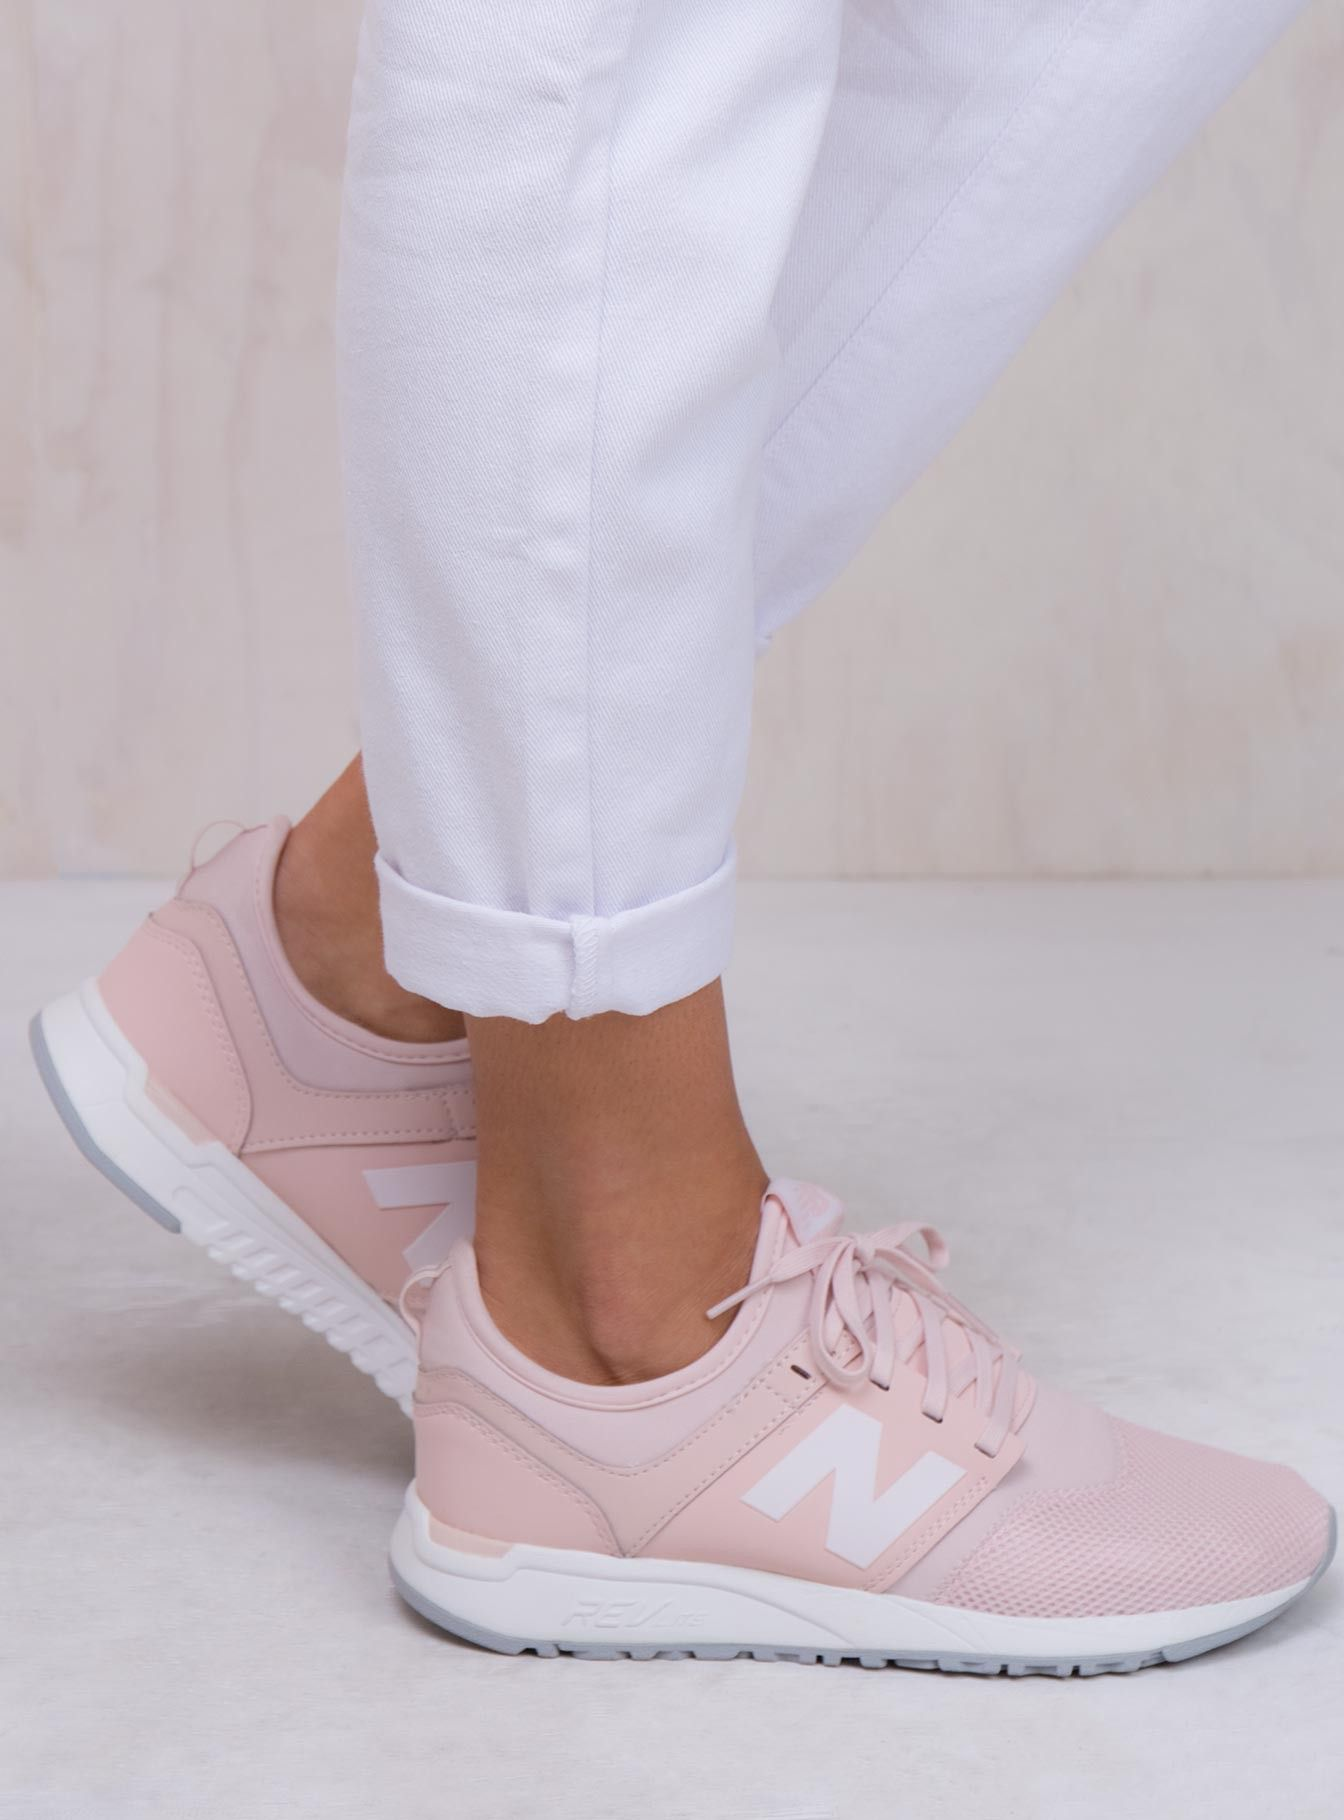 superávit Conciencia Pronombre  New+Balance+247+Classic+Pale+Pink+-+247+Classic+in+Pale+Pink+by+New+Balance  The+247+Classic+is+designed+to+keep+up+with… | New balance pink, New balance,  Pink shoes